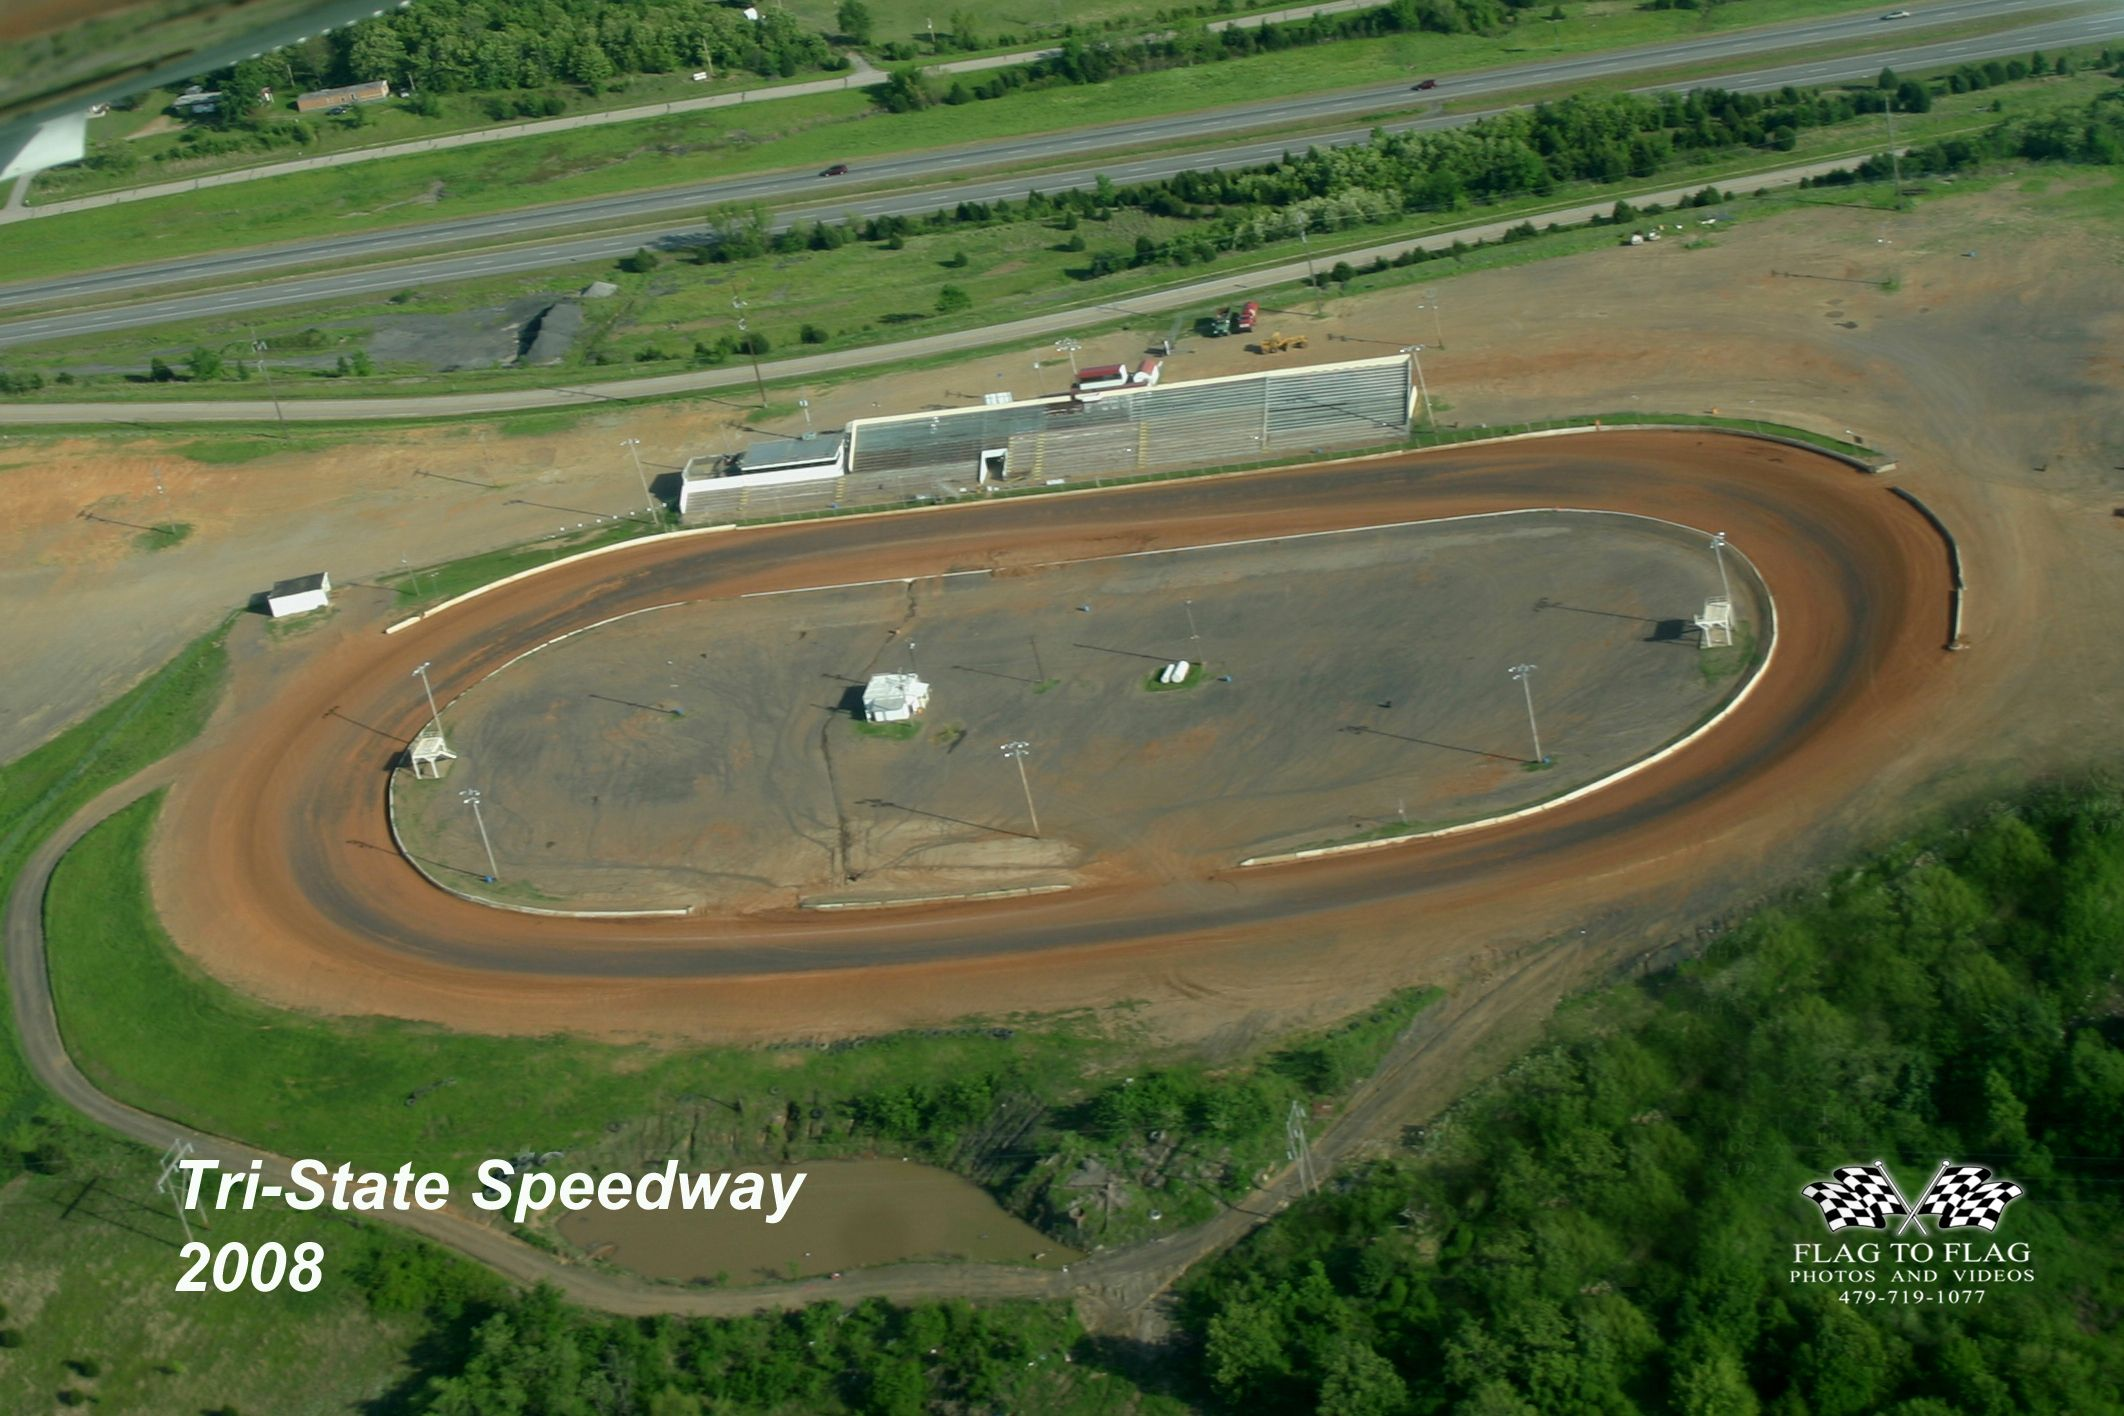 2008 aerial photo of Tri-State Speedway taken by Mary Gray